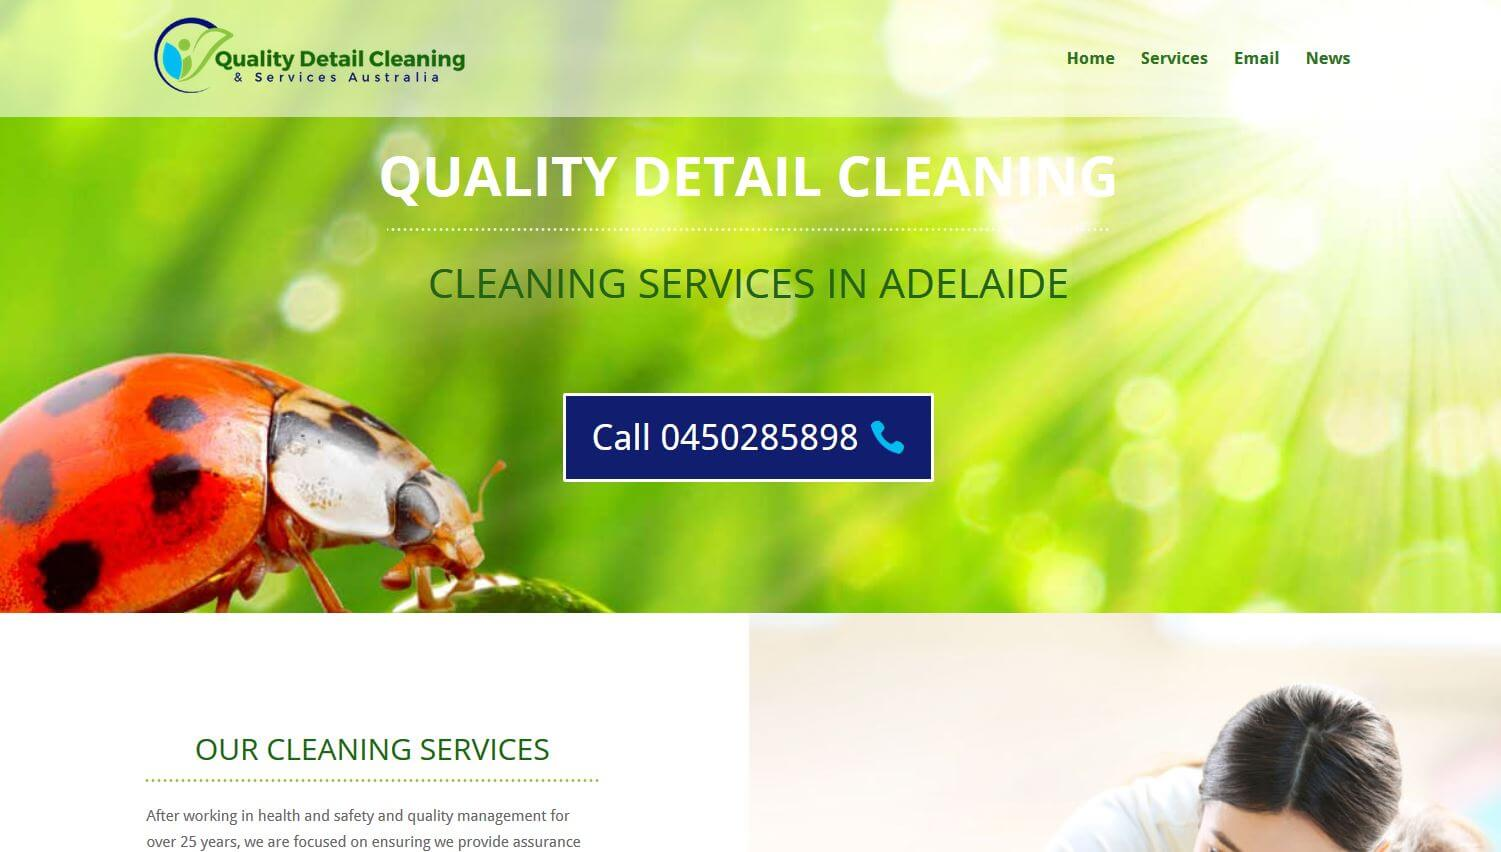 Cleaning service website